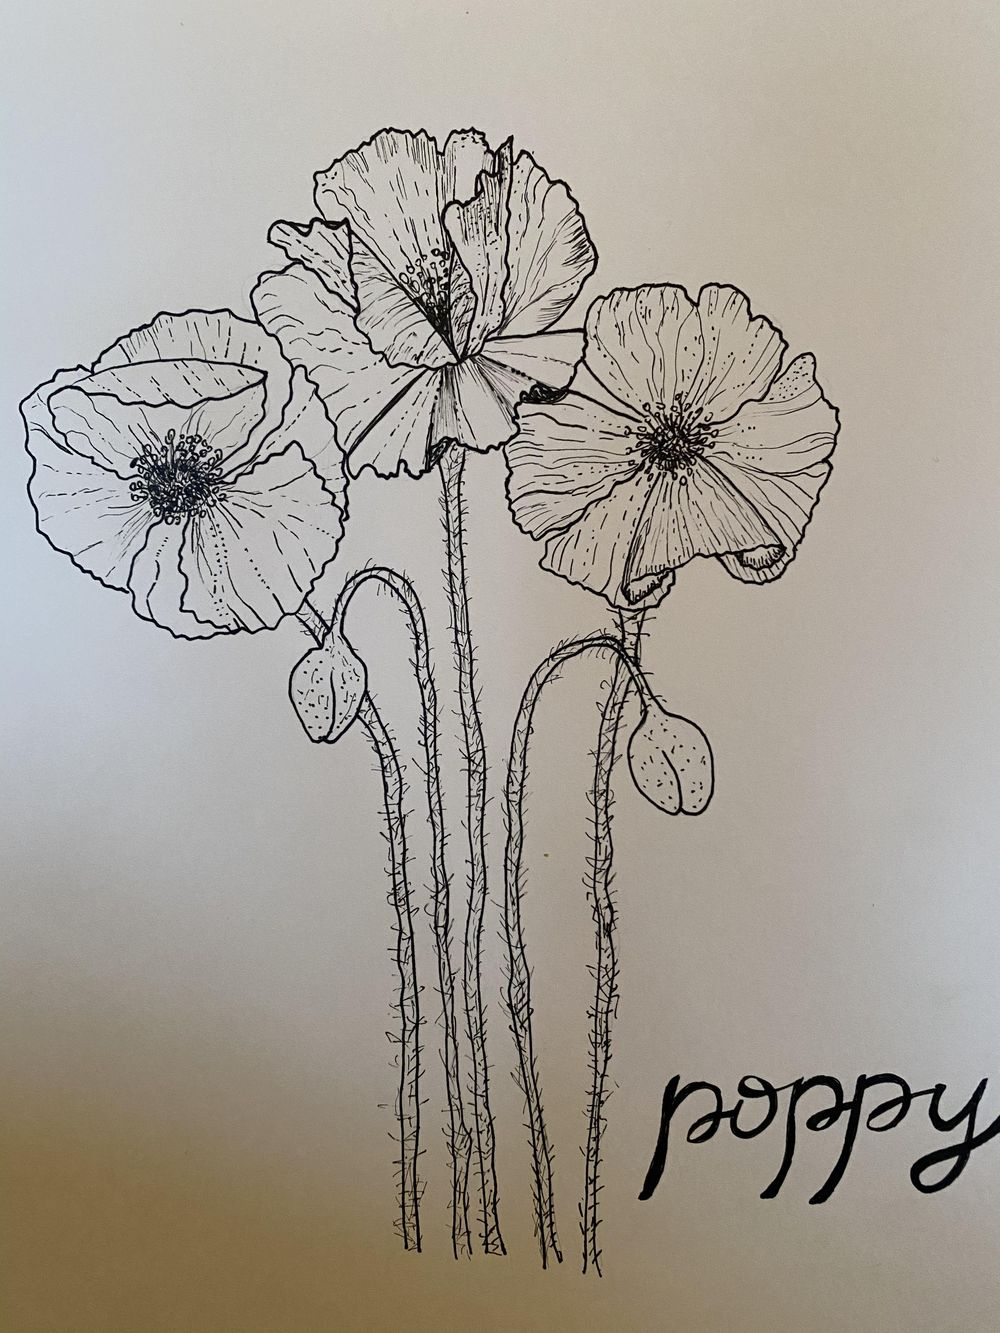 Poppies and hydrangeas - image 2 - student project